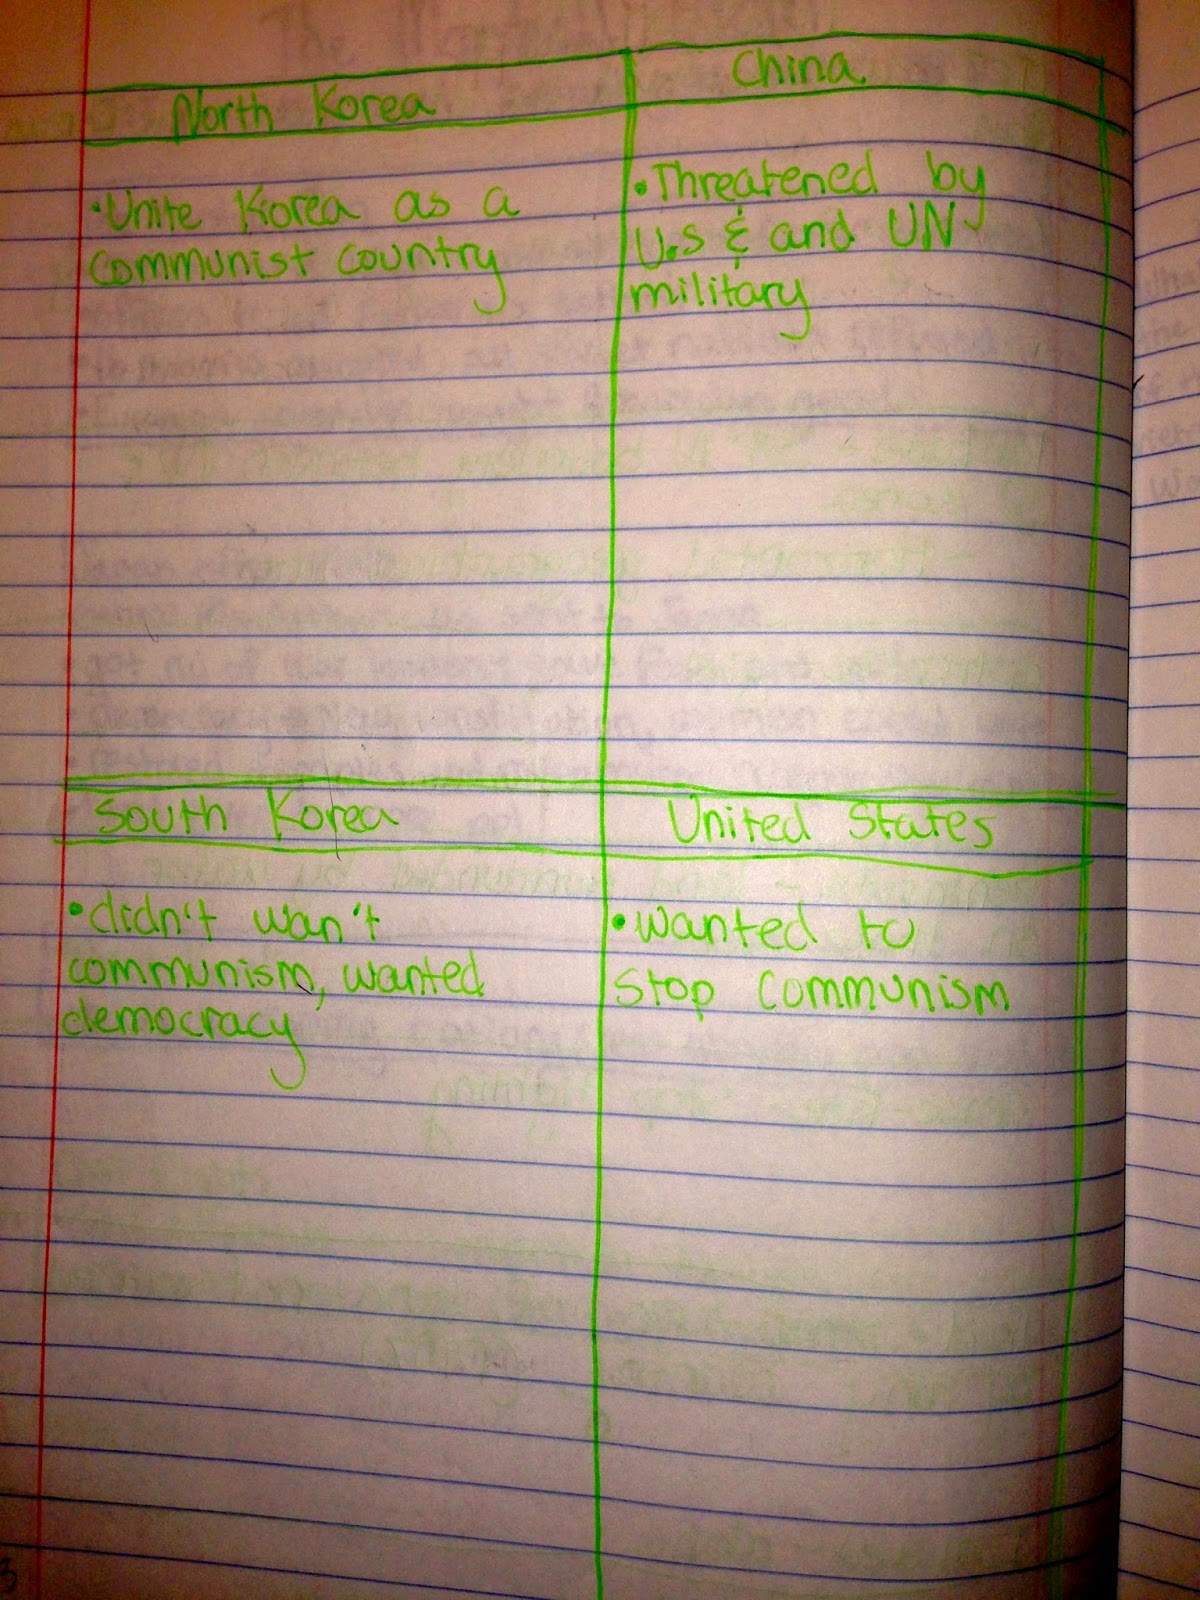 cold war assessment Cold war assessments for our cold war unit, you will be asked to complete four assessments in class each assessment has its own question and rubric.